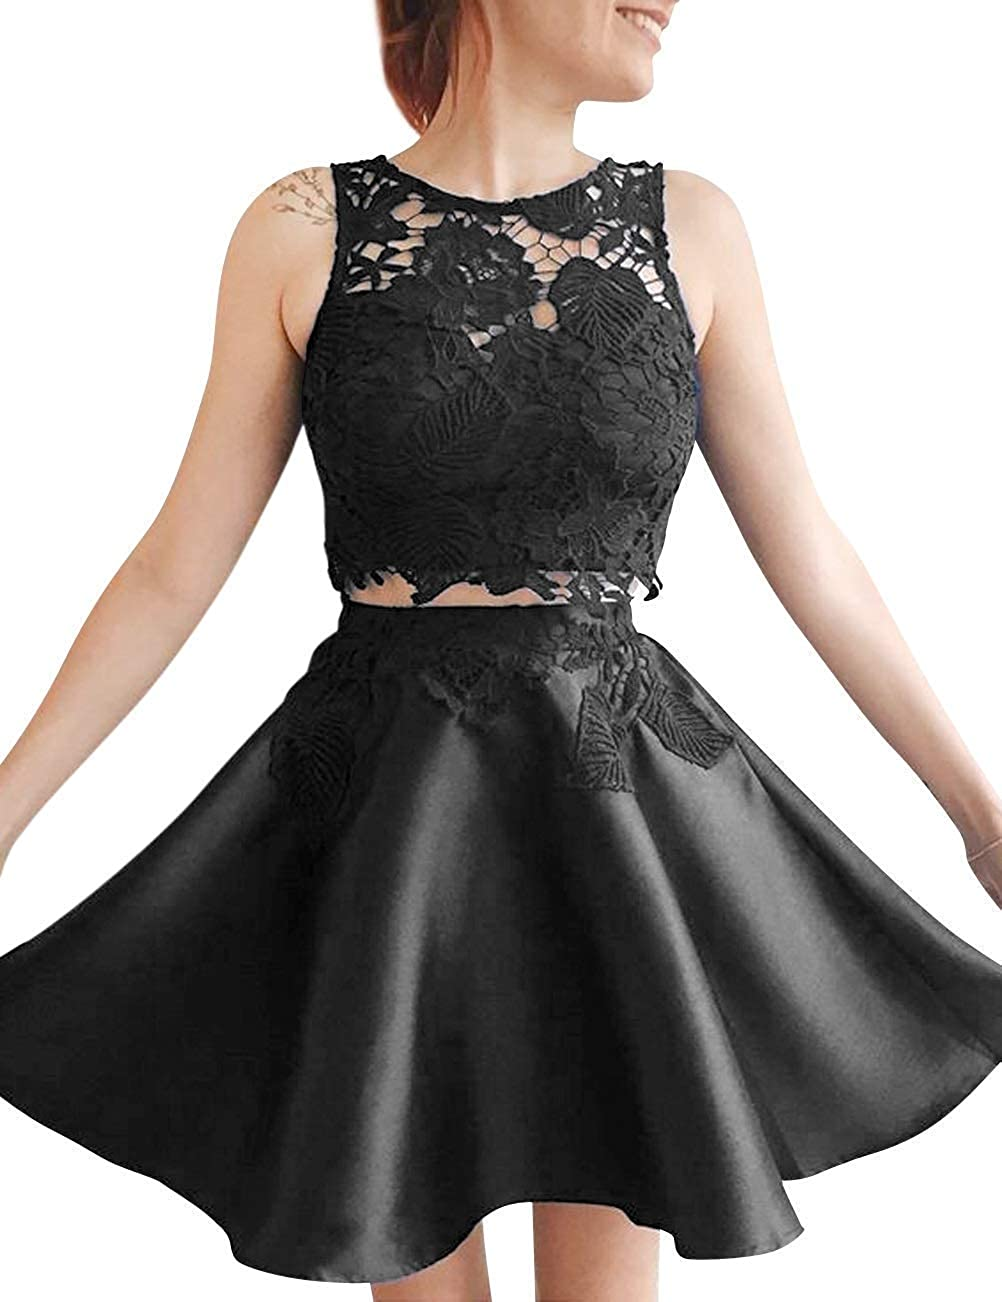 4e46489145a Lady Dress Women s Two Piece Lace Homecoming Dresses Short High Neck Satin Prom  Dresses A Line Appliques Party Gowns 2 ...